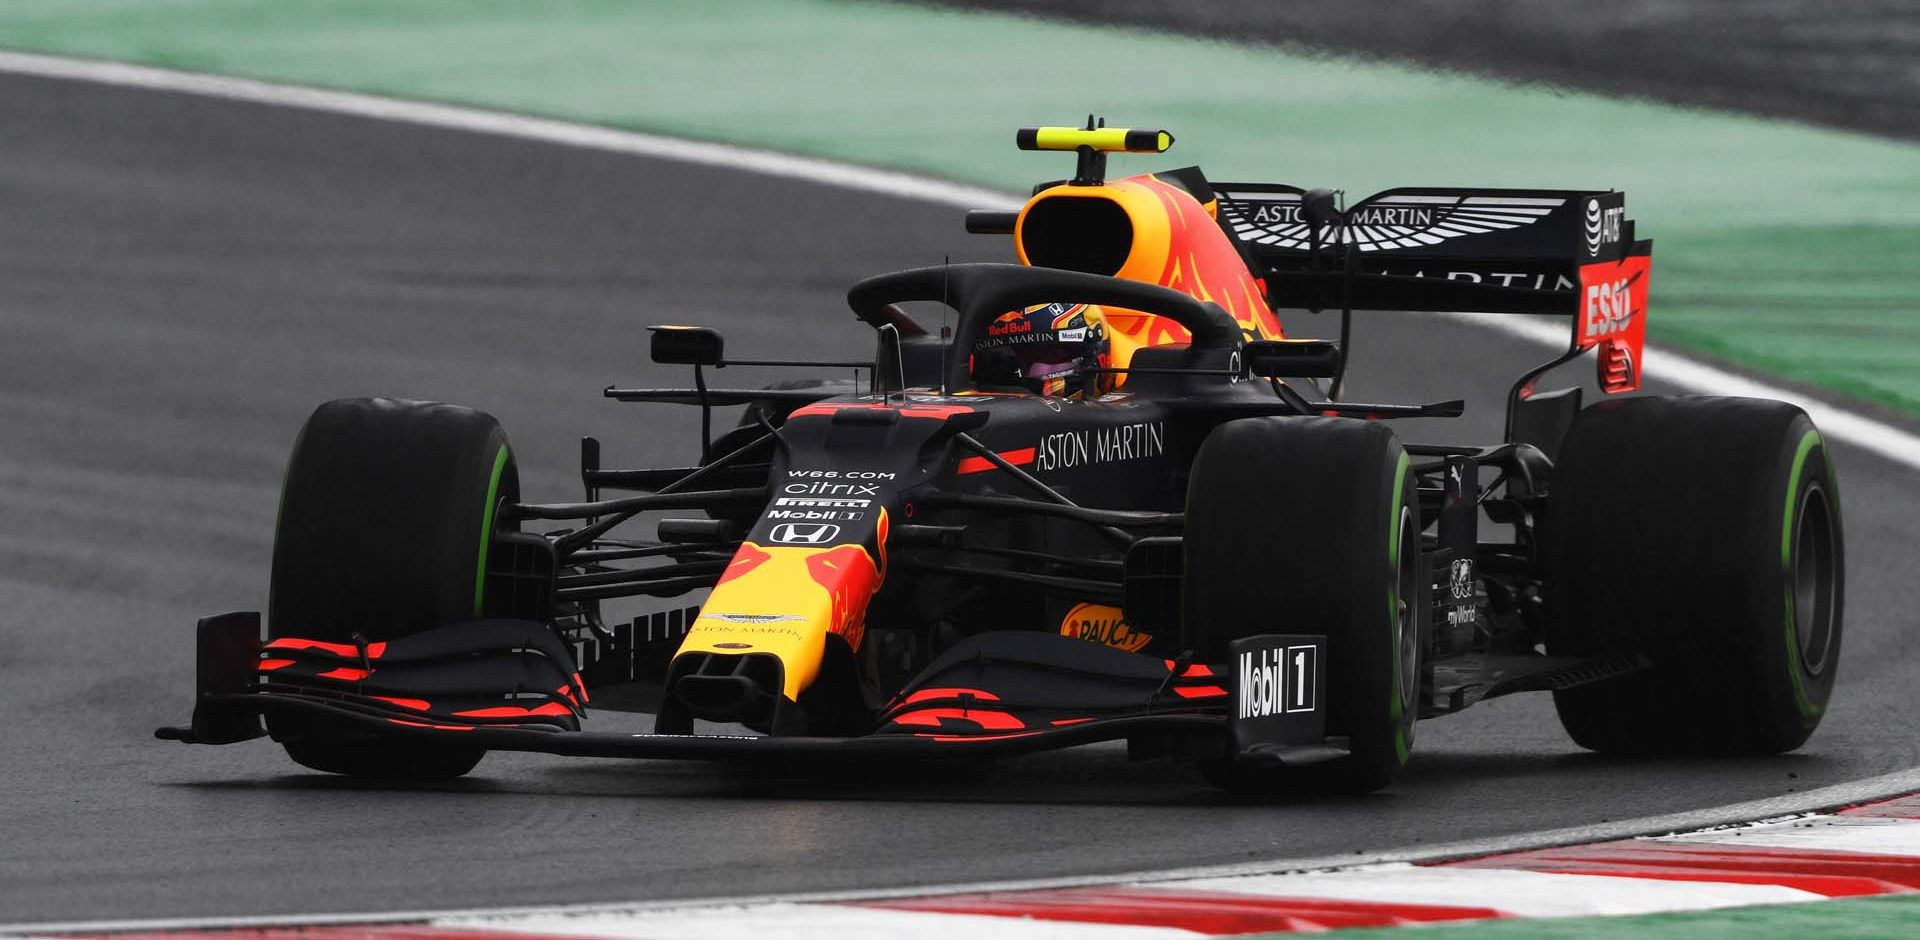 ISTANBUL, TURKEY - NOVEMBER 14: Alexander Albon of Thailand driving the (23) Aston Martin Red Bull Racing RB16 on track during final practice ahead of the F1 Grand Prix of Turkey at Intercity Istanbul Park on November 14, 2020 in Istanbul, Turkey. (Photo by Rudy Carezzevoli/Getty Images)